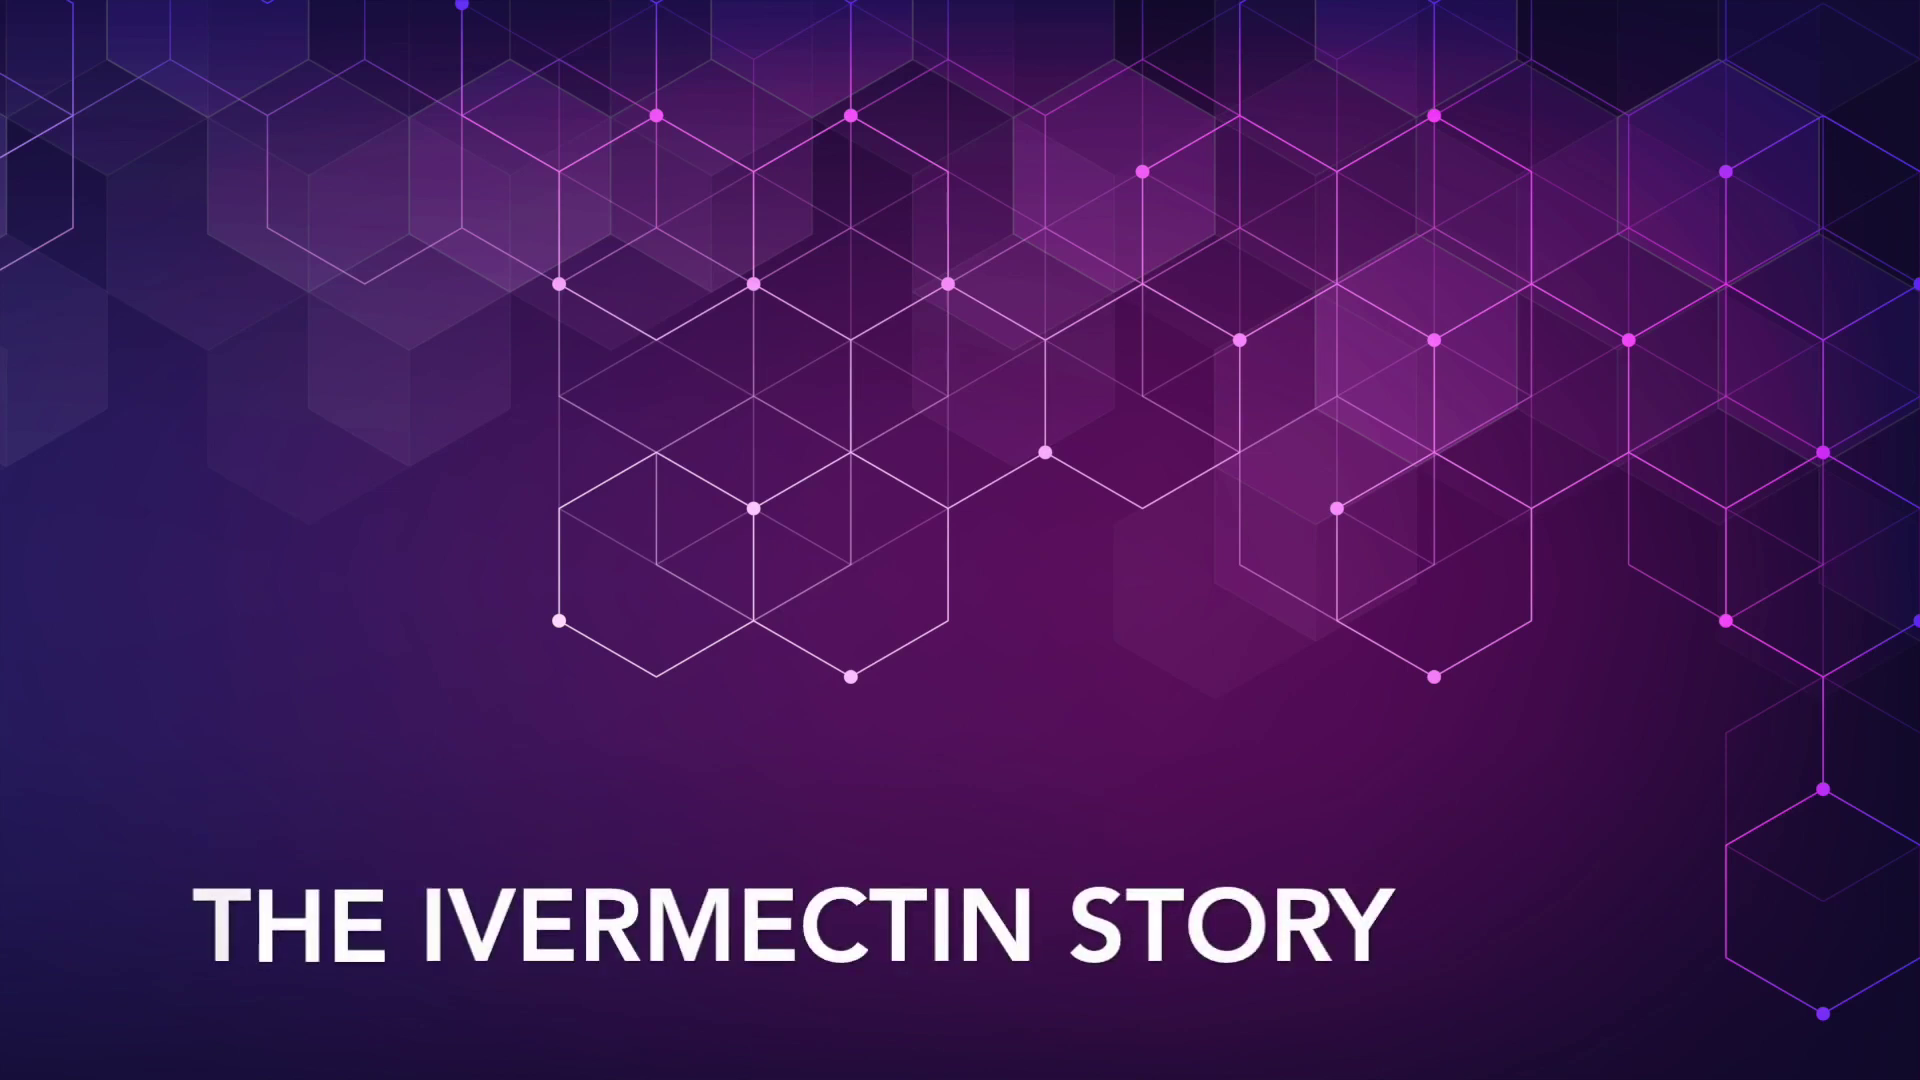 The Ivermectin Story